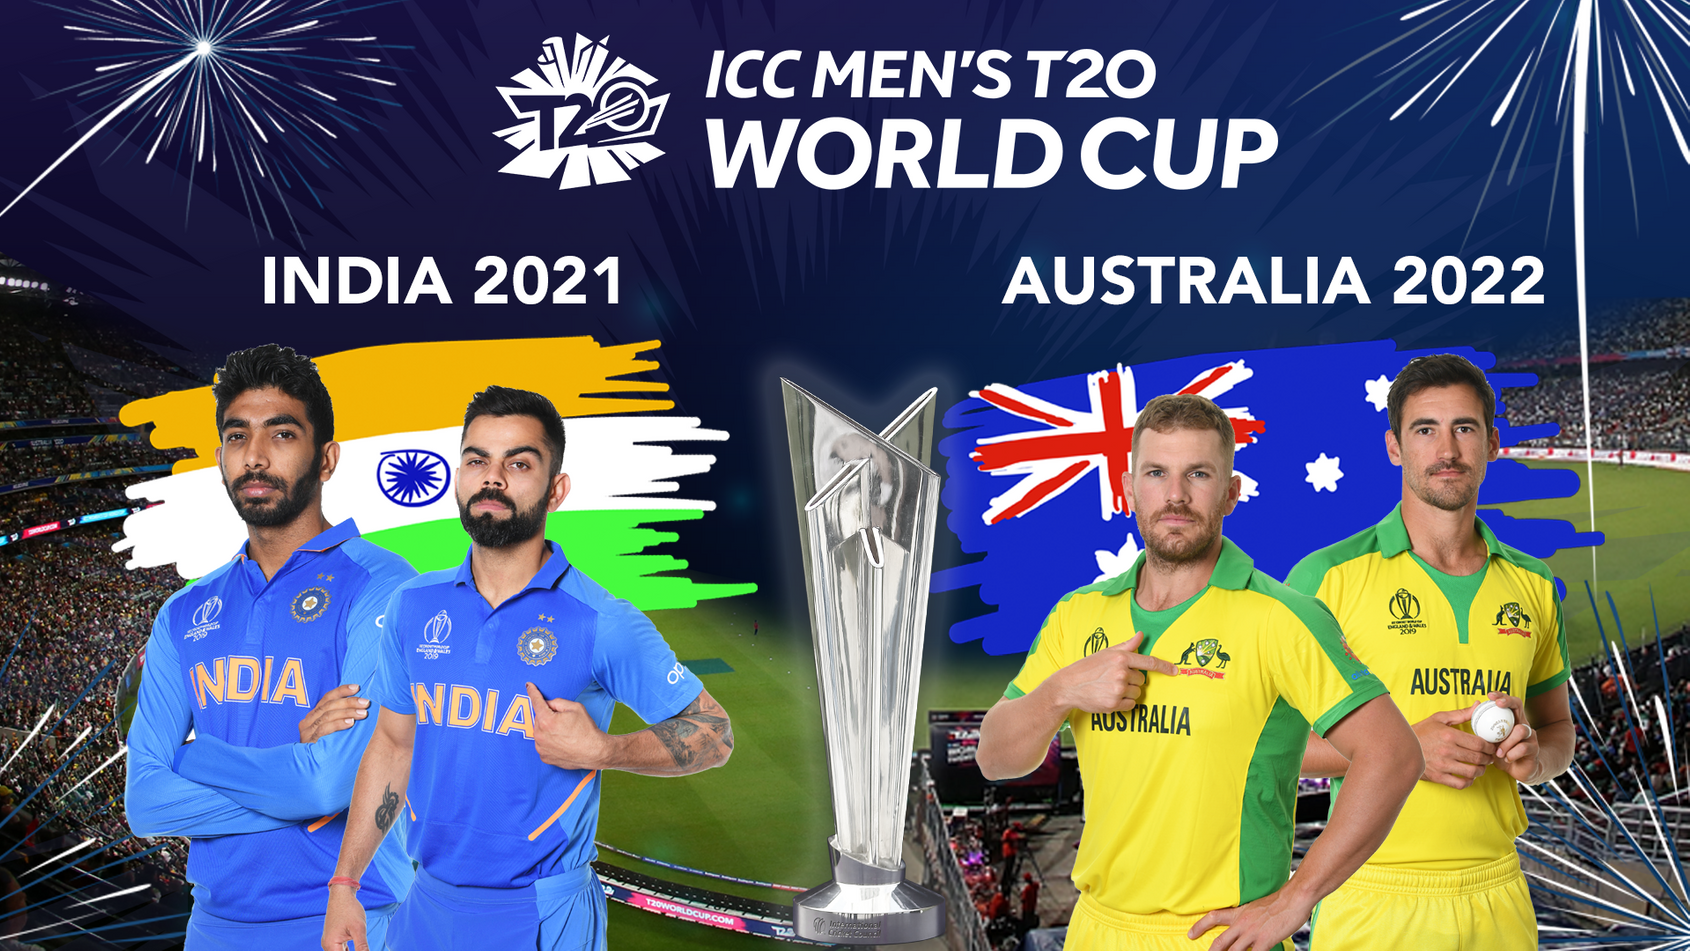 ICC Women's Cricket World Cup 2021 postponed to 2022